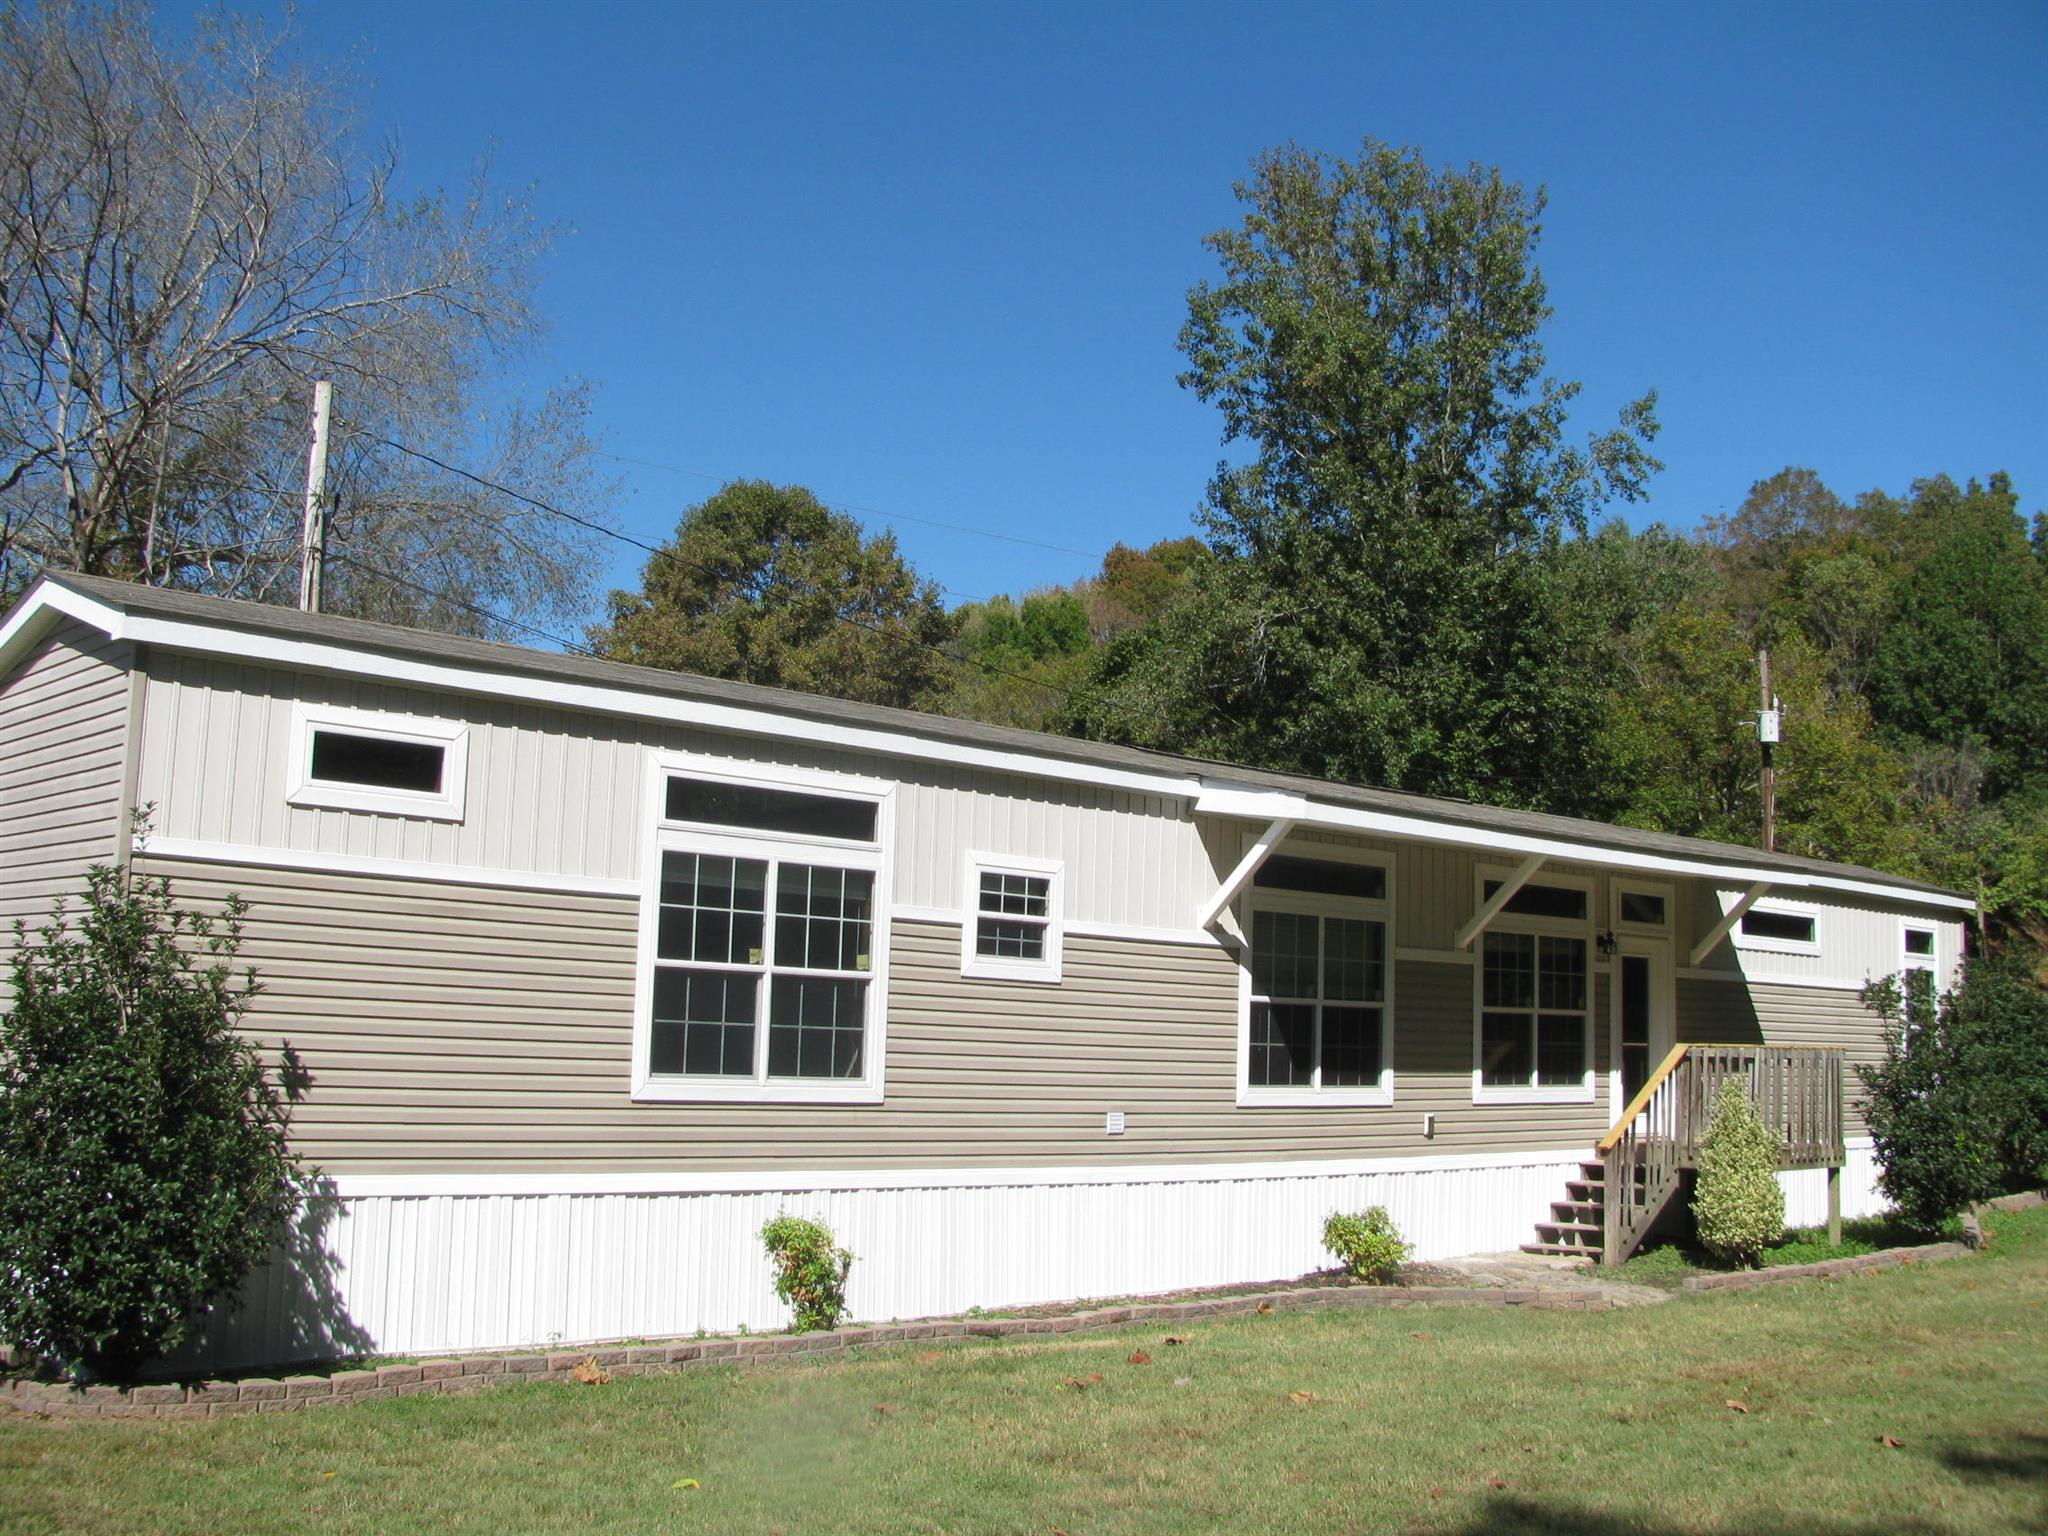 89 Gus Norfleet Ln, Erin, TN 37061 - Erin, TN real estate listing